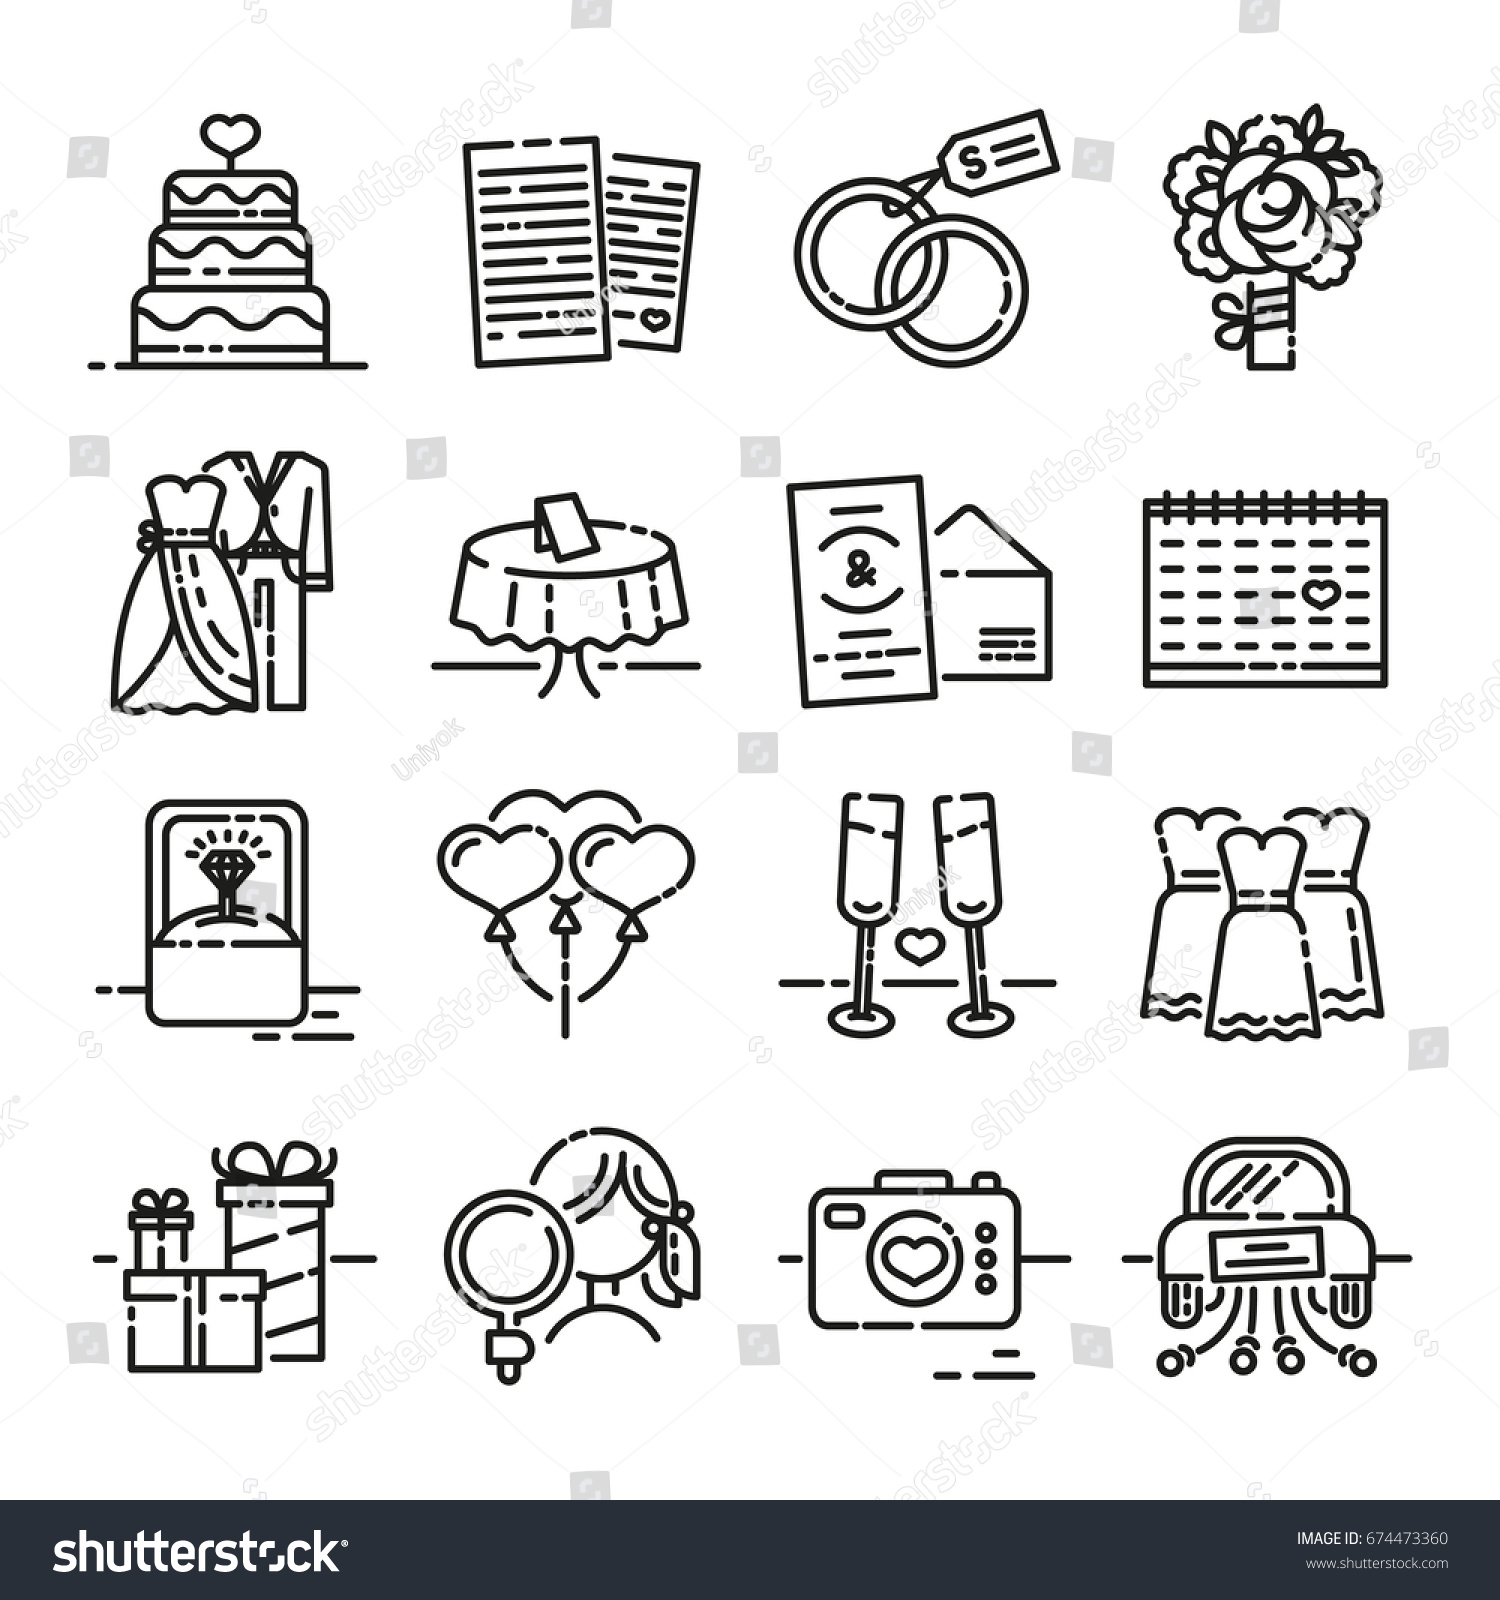 Set Line Icon Wedding Symbols Groom Stock Vector Royalty Free